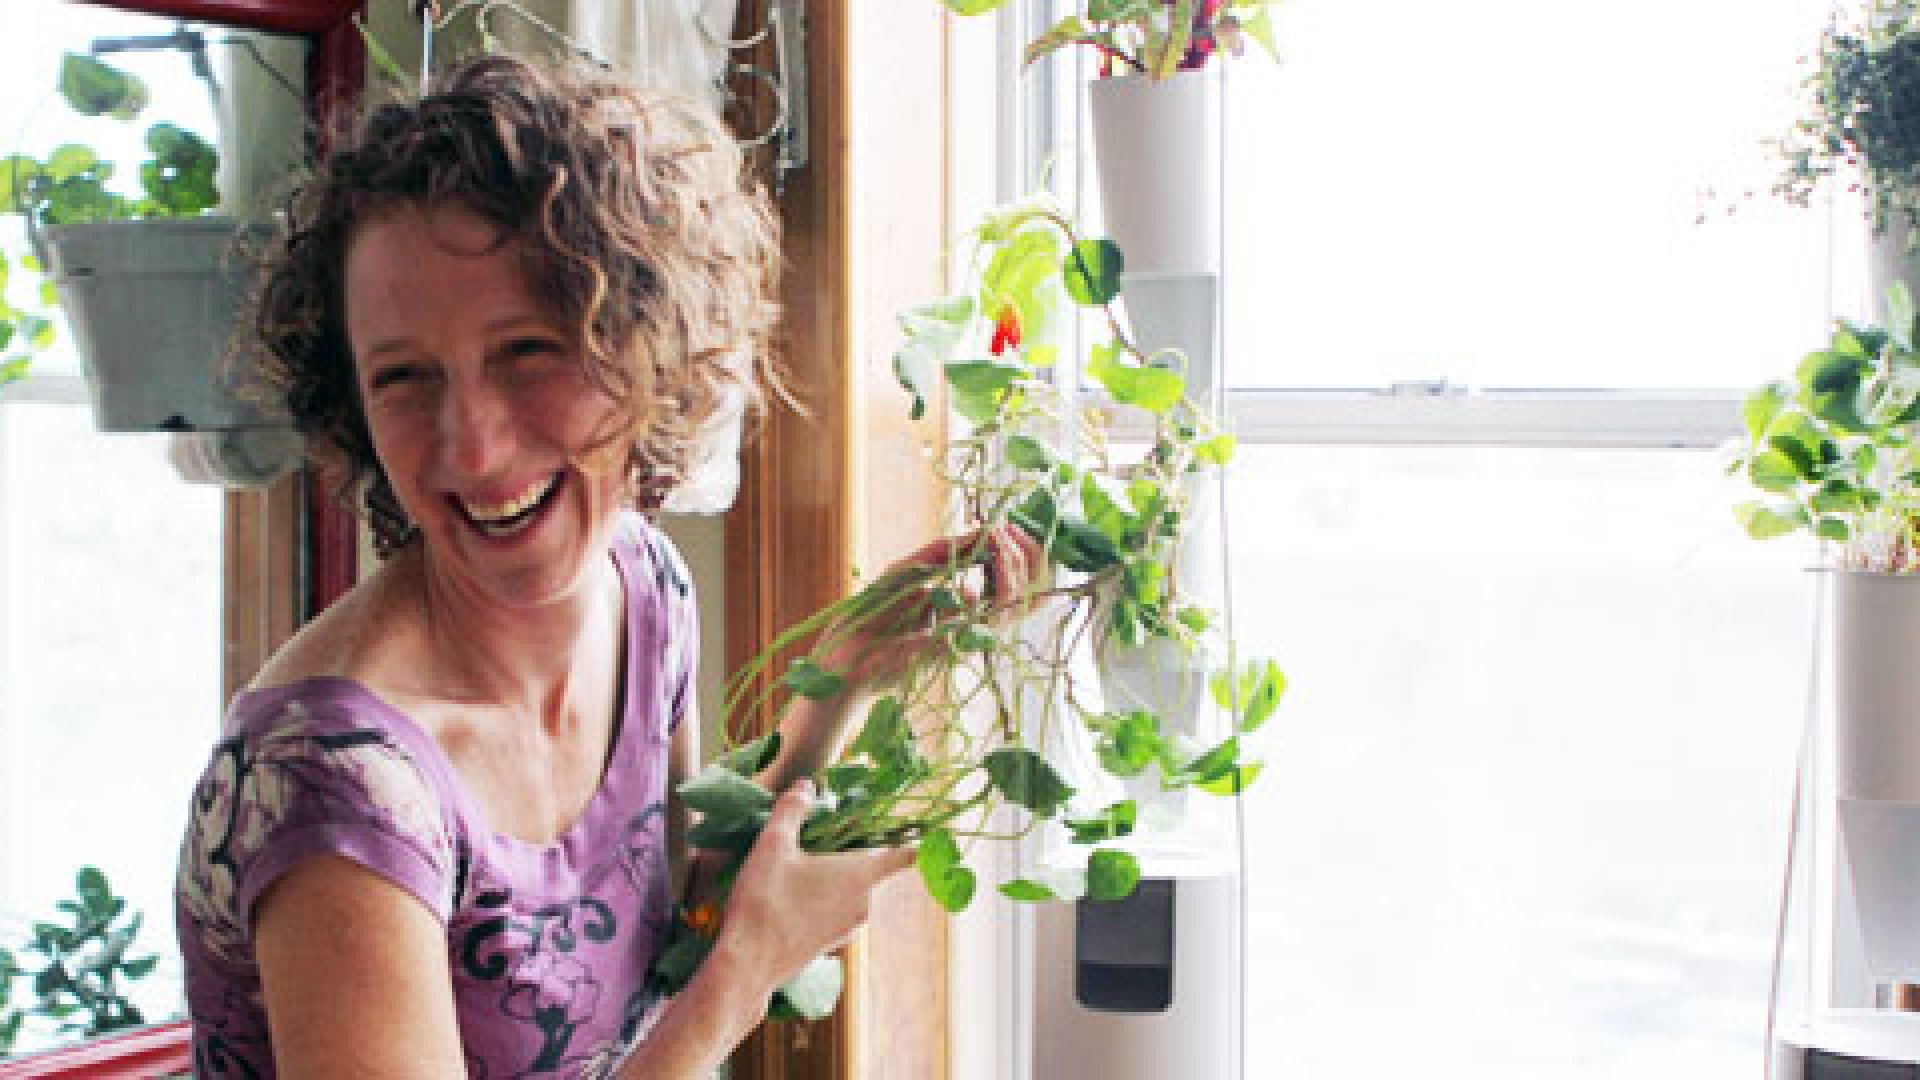 Britta Riley's Brooklyn, New York-based Windowfarms sells a manufactured kit for in-window food growing, which was based on a crowd-sourced design model.